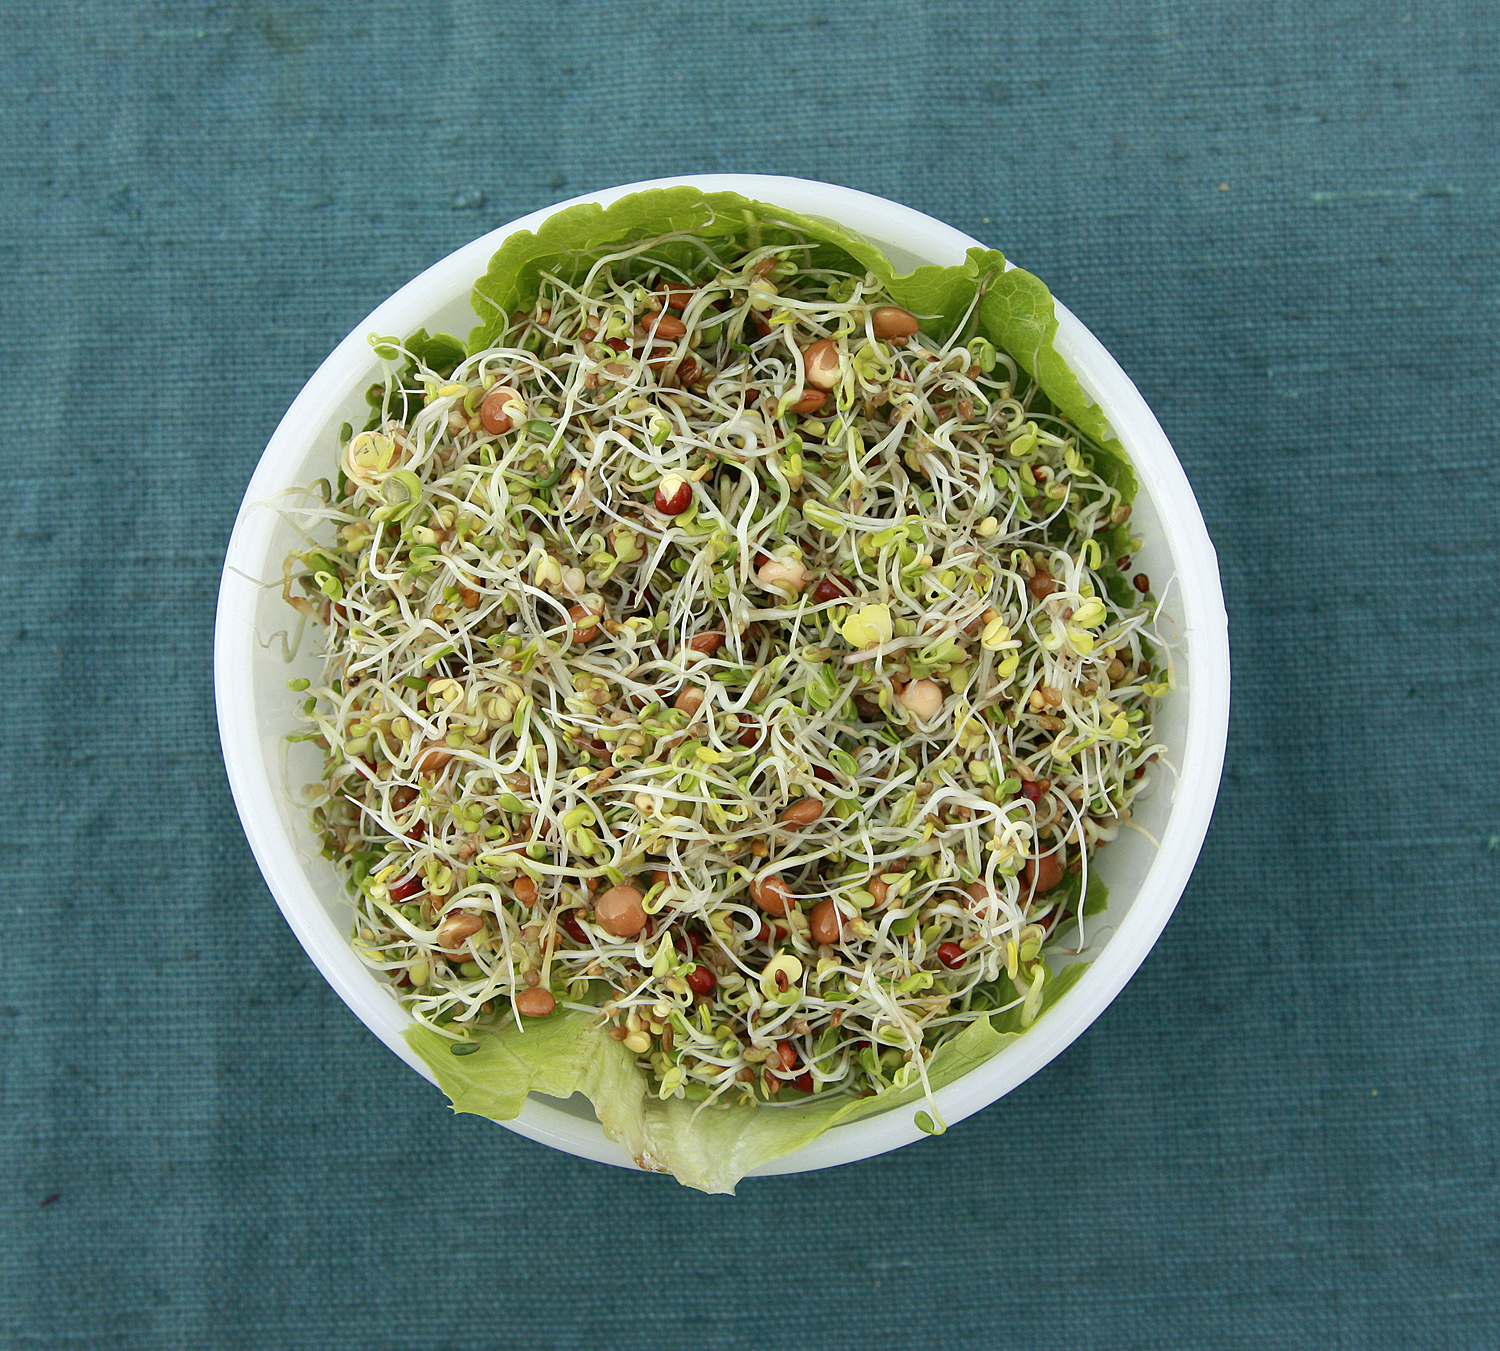 Spicy Sprout Salad